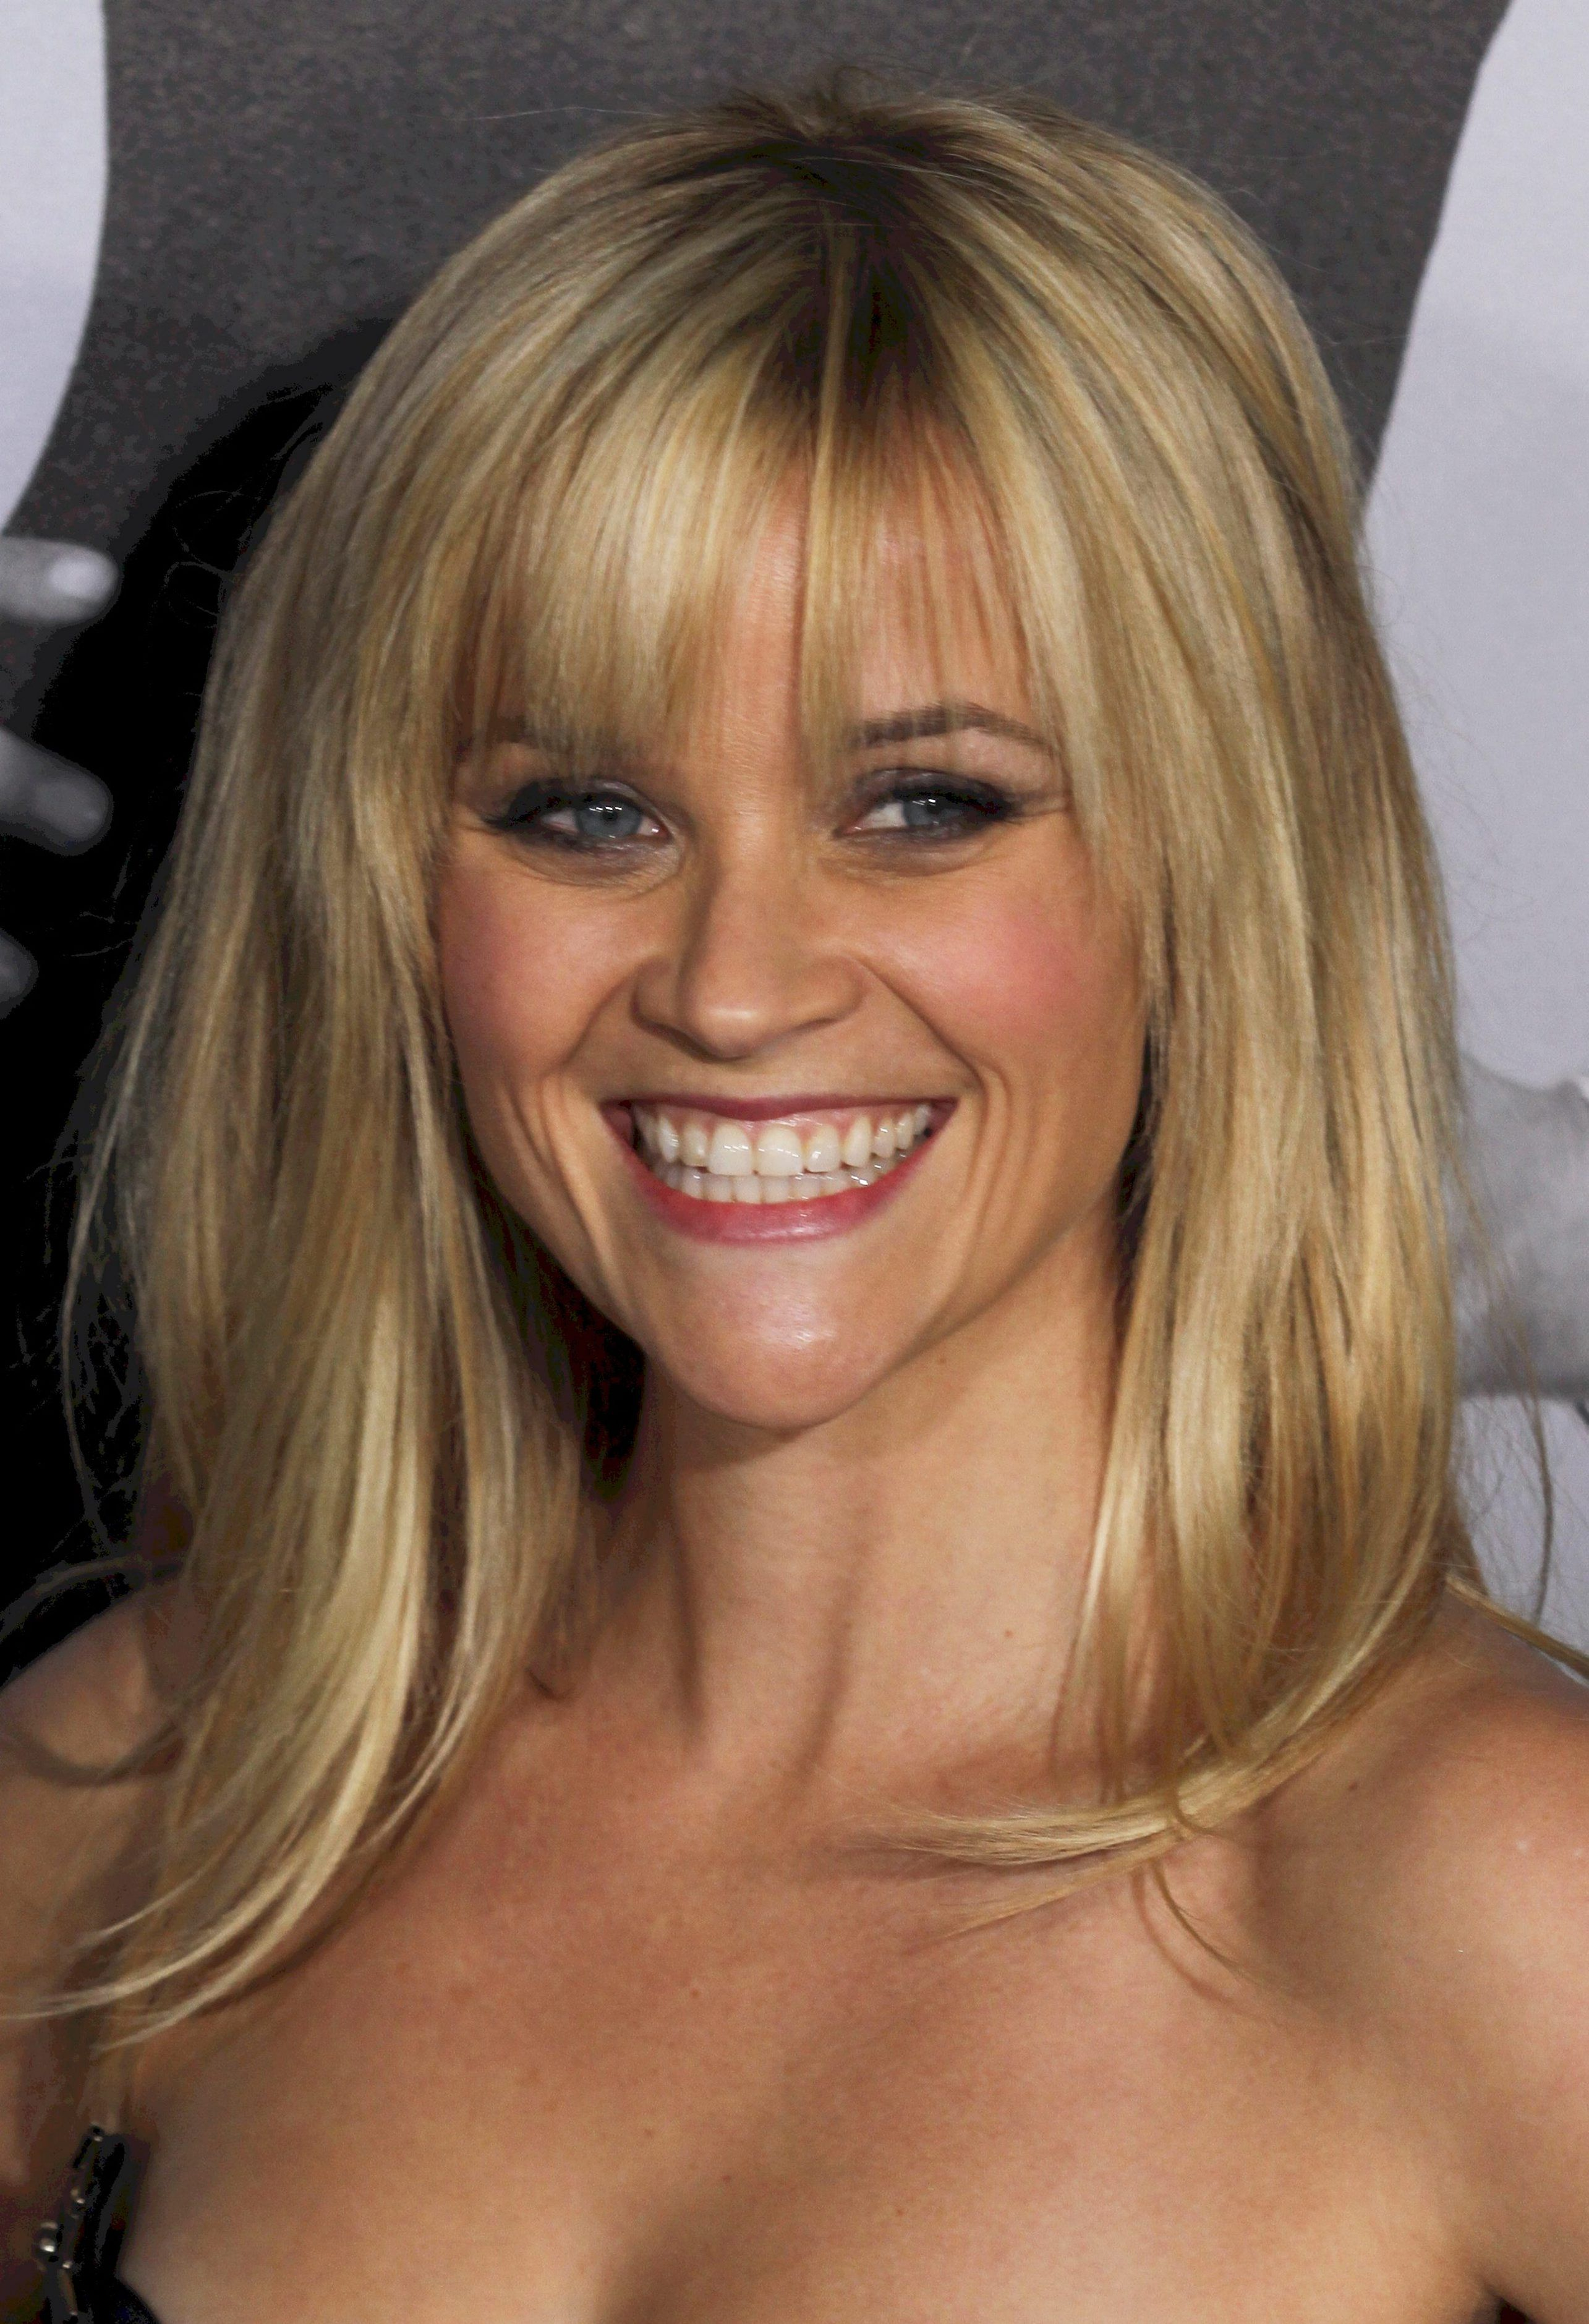 reese witherspoon hair style reese witherspoon bangs and shoulder length girly ness 5098 | b6314d29853f863ad3ebf89aaf4fc1a6